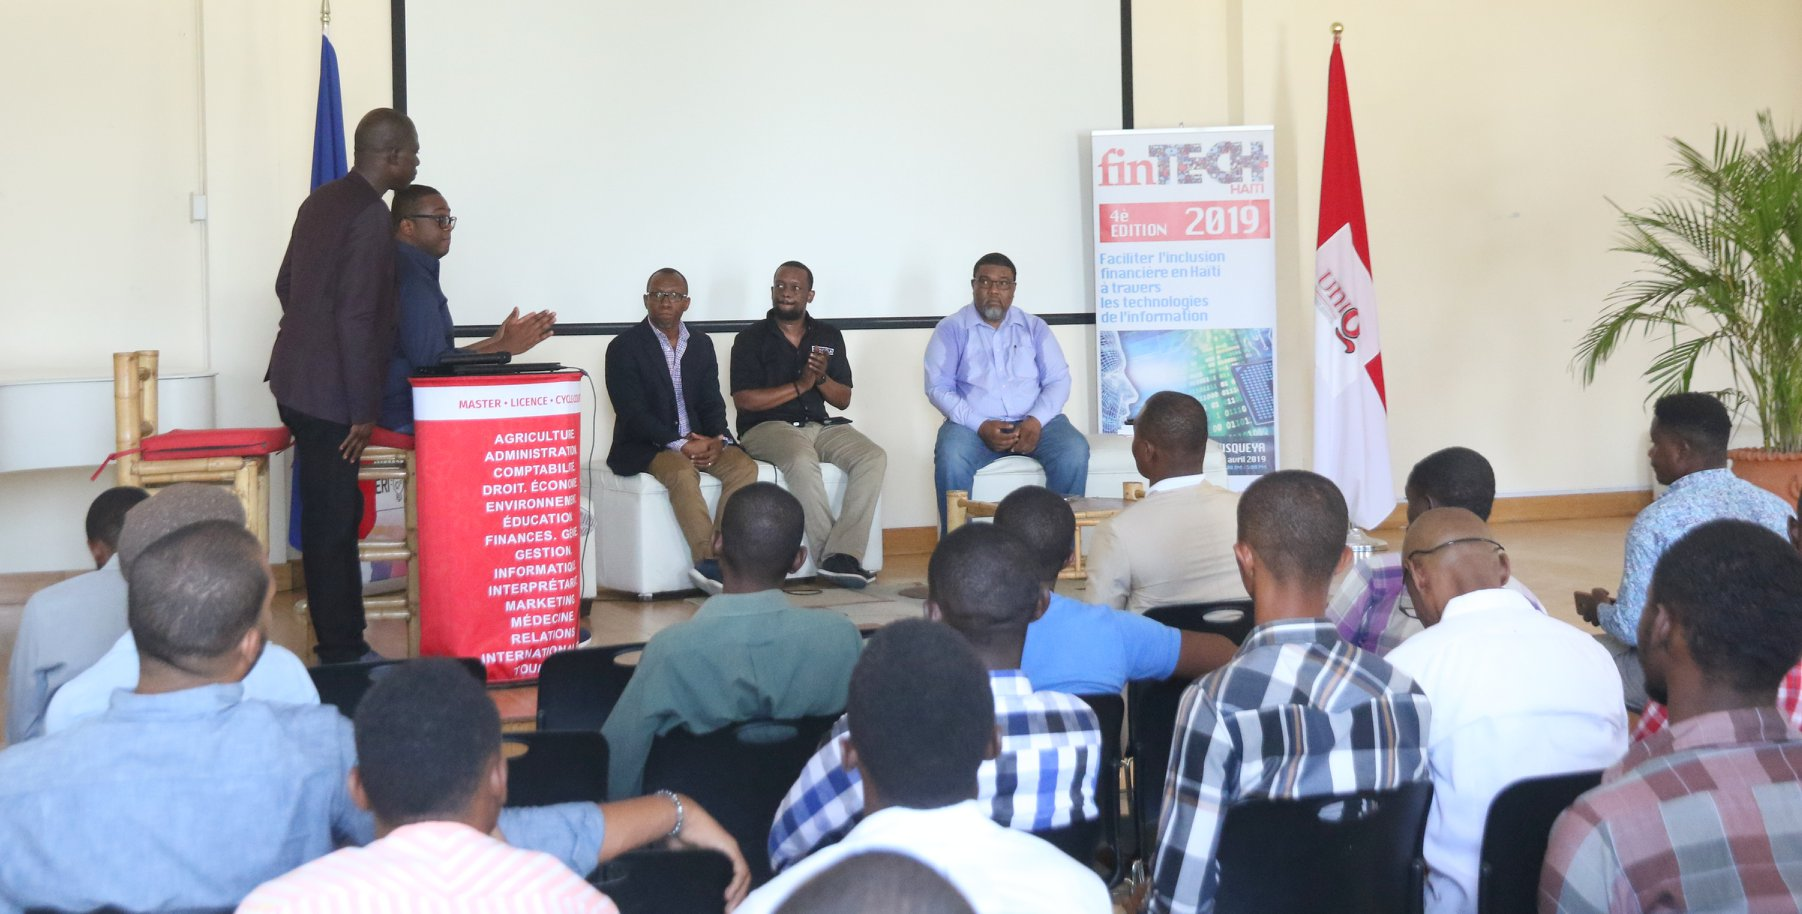 La 4e édition de la Fintech en images: les participants 2/ Photo: Facebook/fintechhaiti